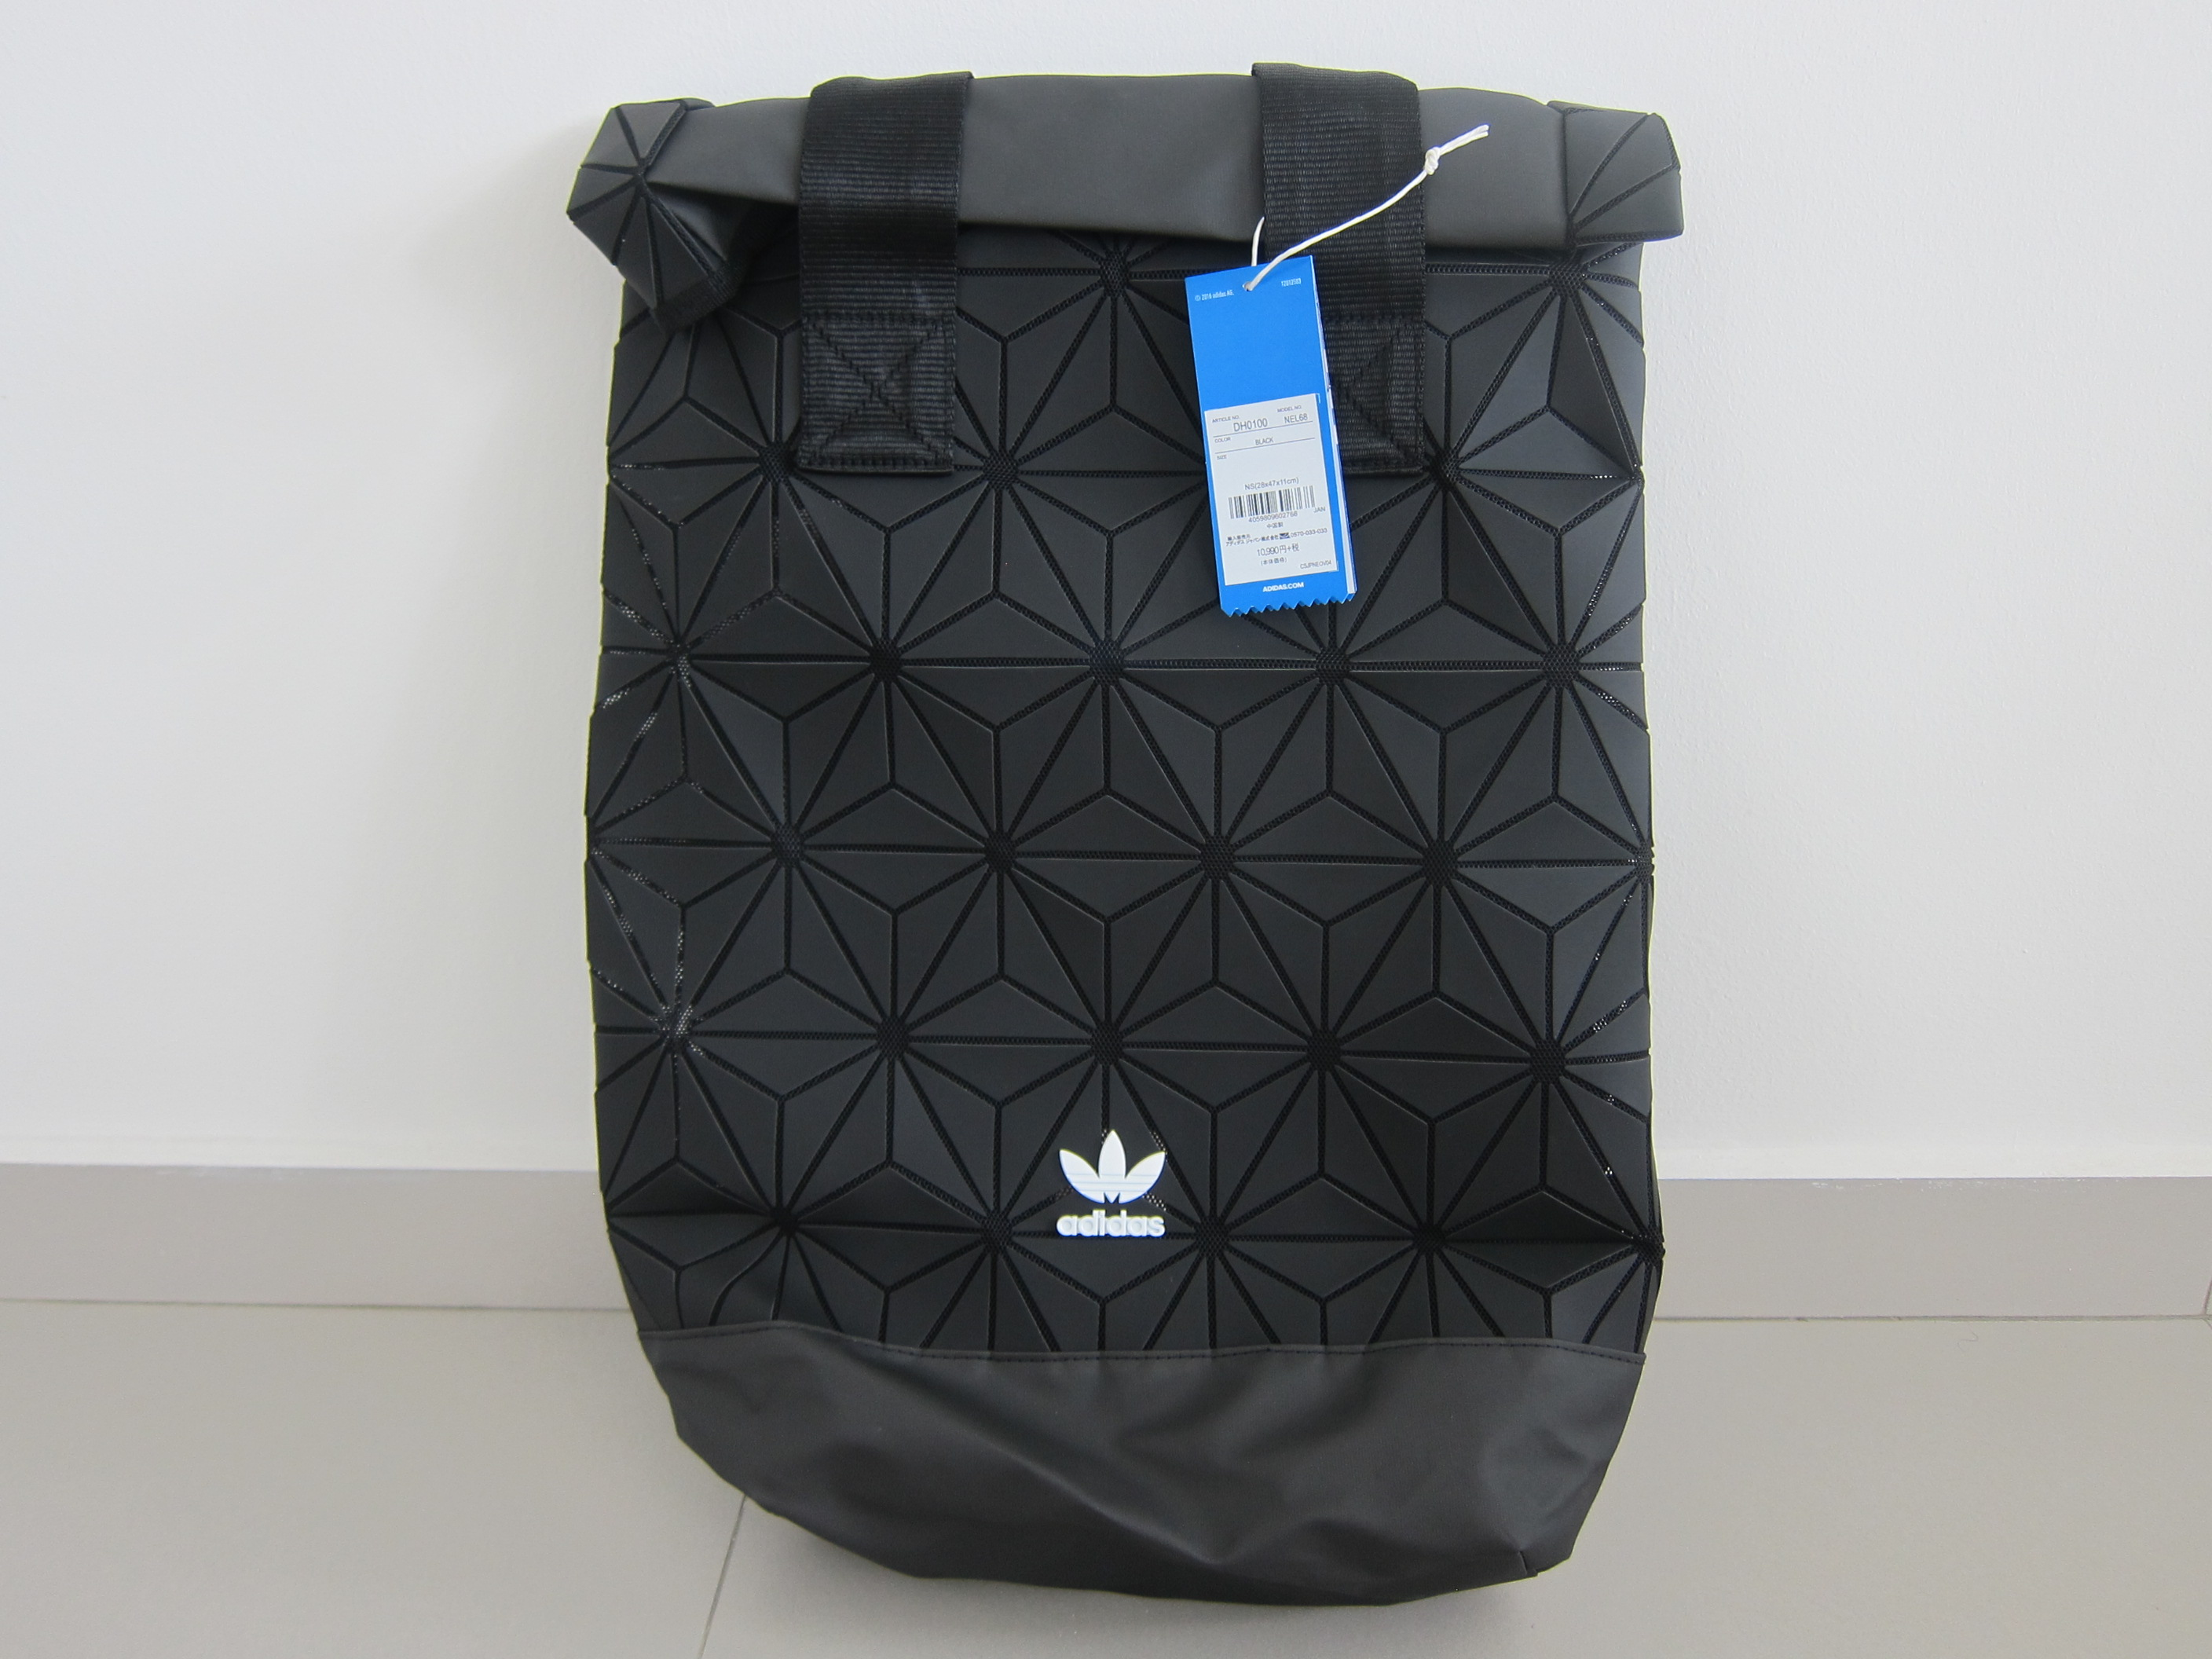 Puerto marítimo despensa dar a entender  Adidas Issey Miyake 3D Roll Top Backpack « Blog | lesterchan.net